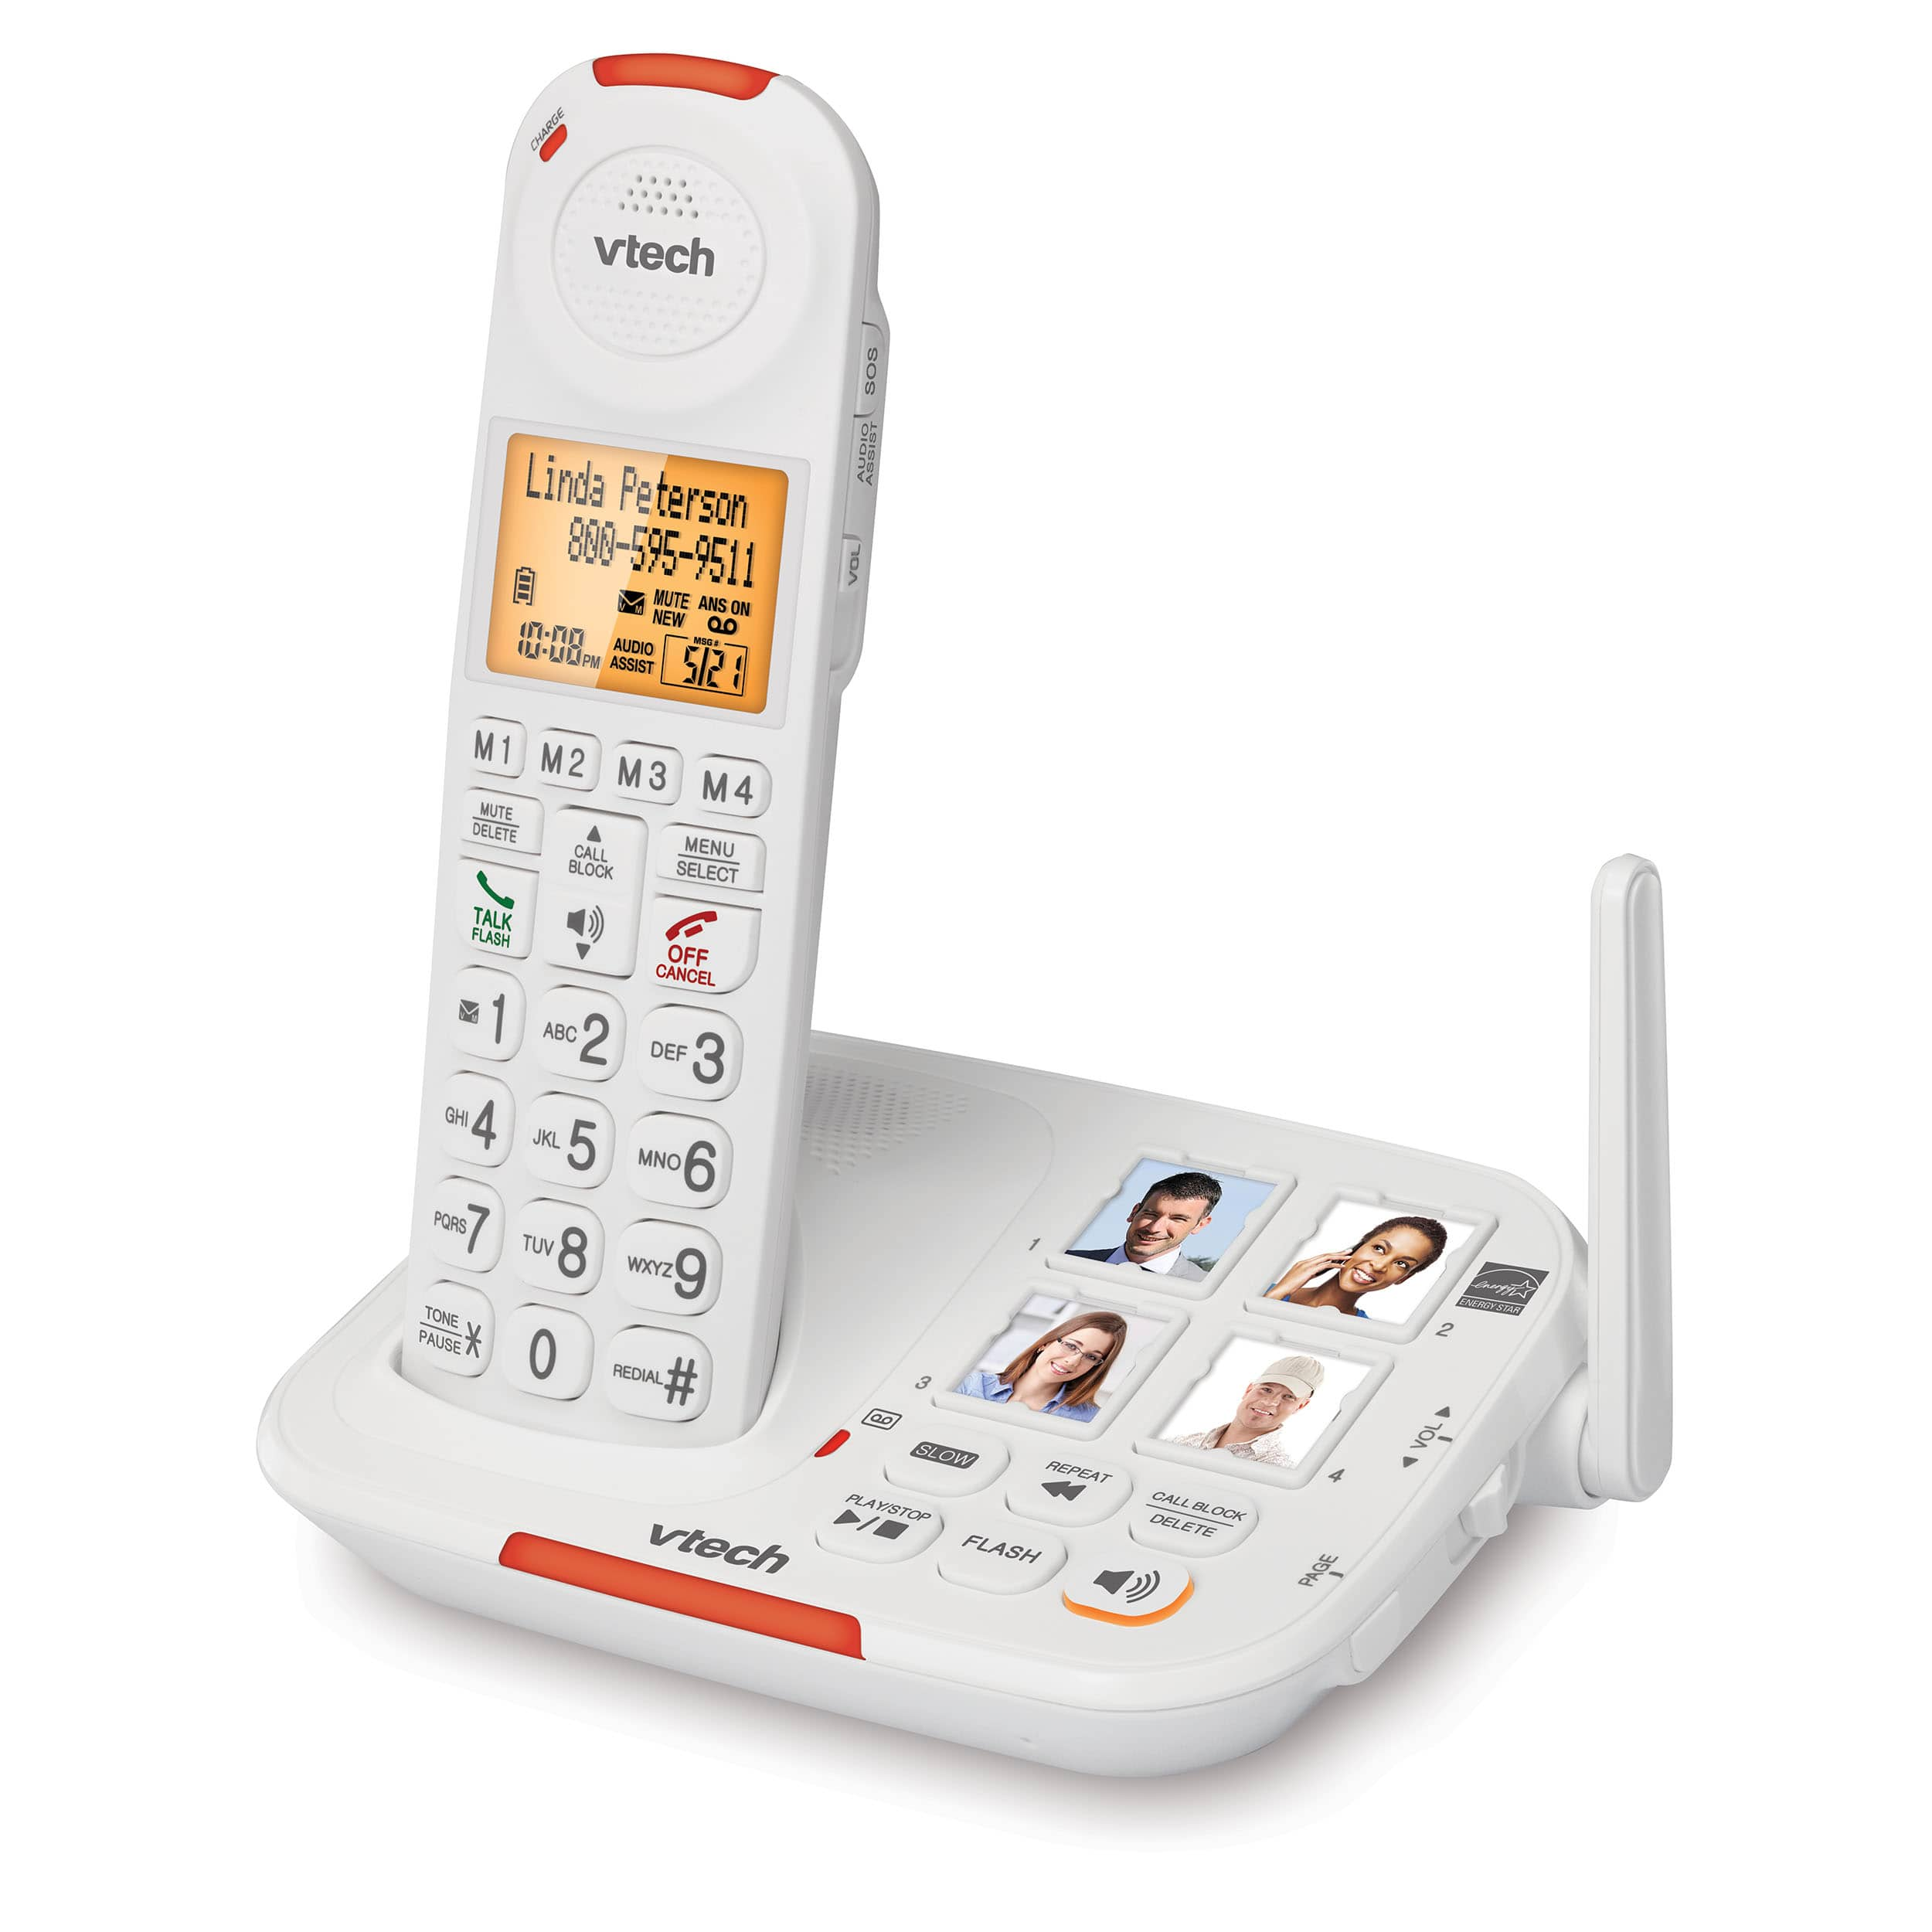 4 Handset Amplified Cordless Answering System with Big Buttons and Display